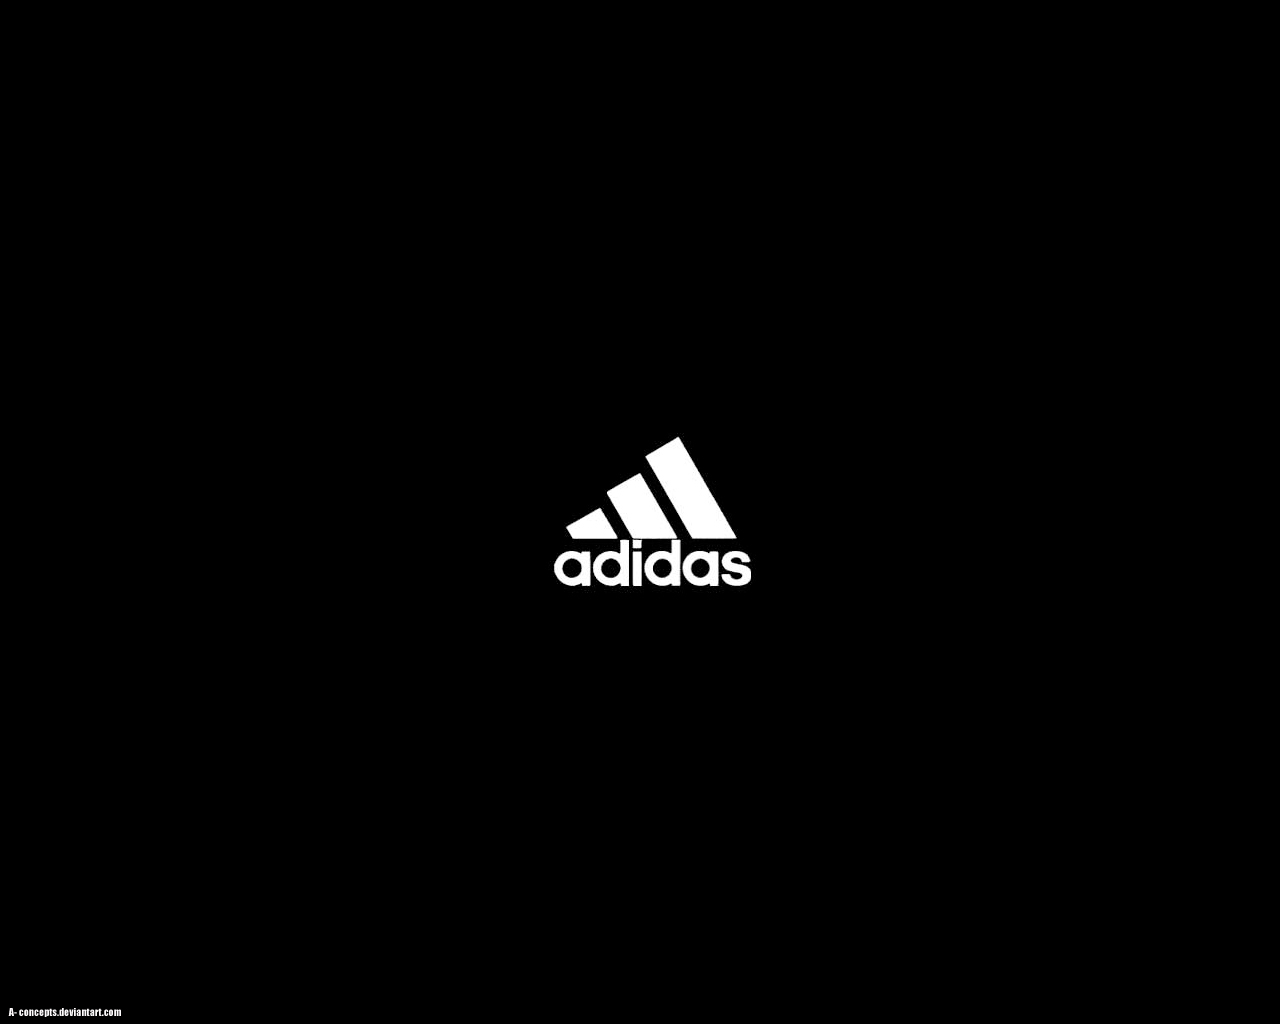 Free Download Logo Wallpaper Logo Adidas Vector Adidas Logo Black N39 White By 1280x1024 For Your Desktop Mobile Tablet Explore 22 Adidas Wallpaper Black Adidas Wallpaper Black Adidas Black